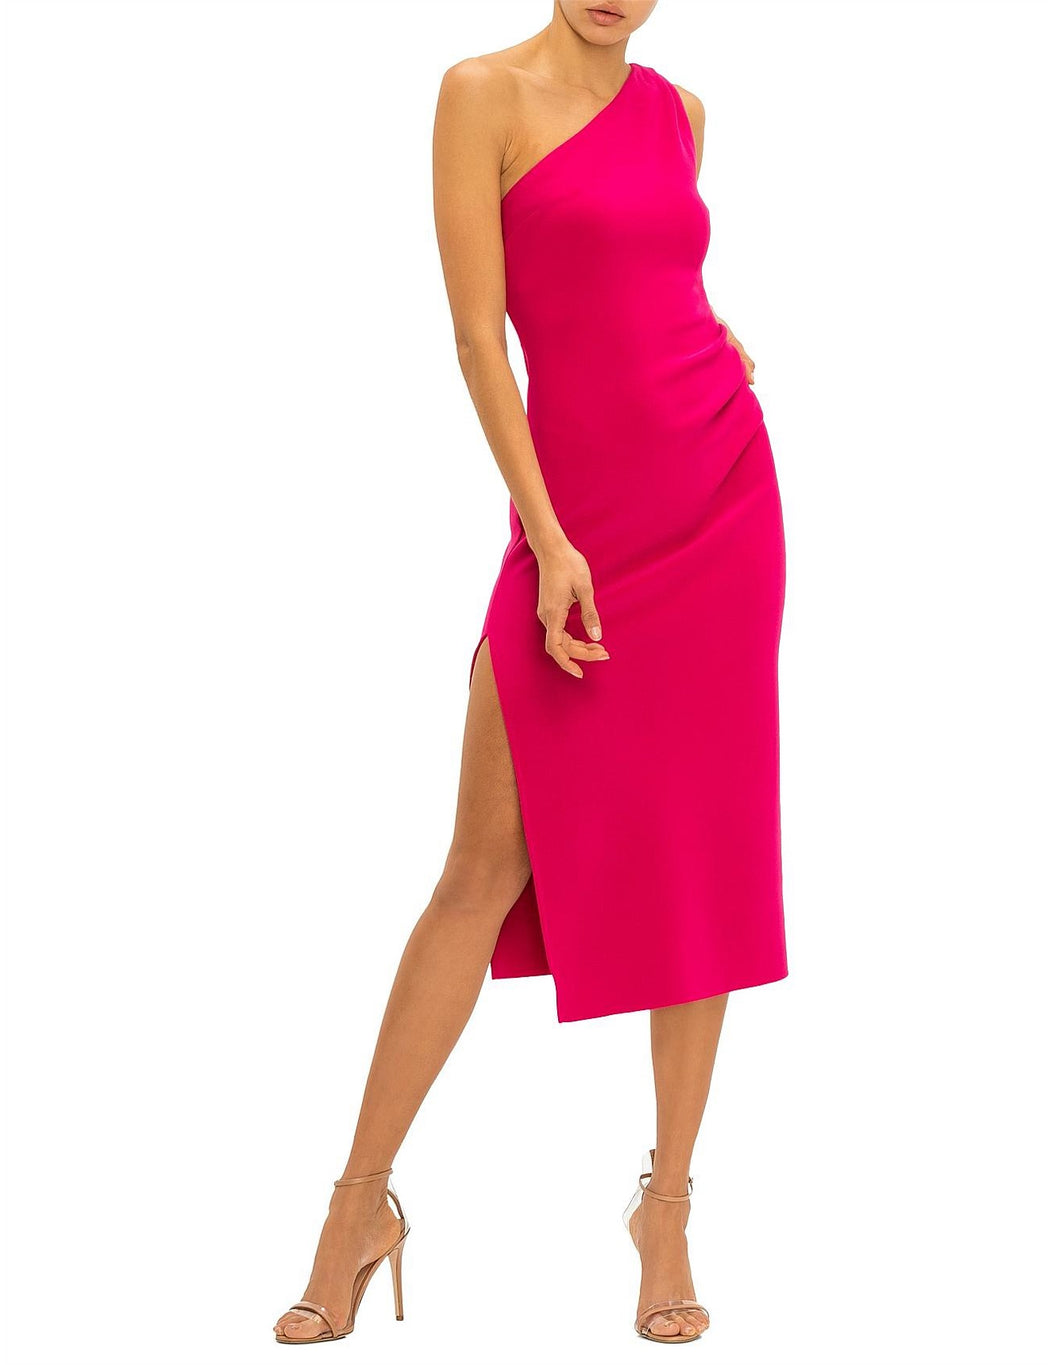 Bec and Bridge Ulla Asym Pink Midi Size 6 | Bec and Bridge